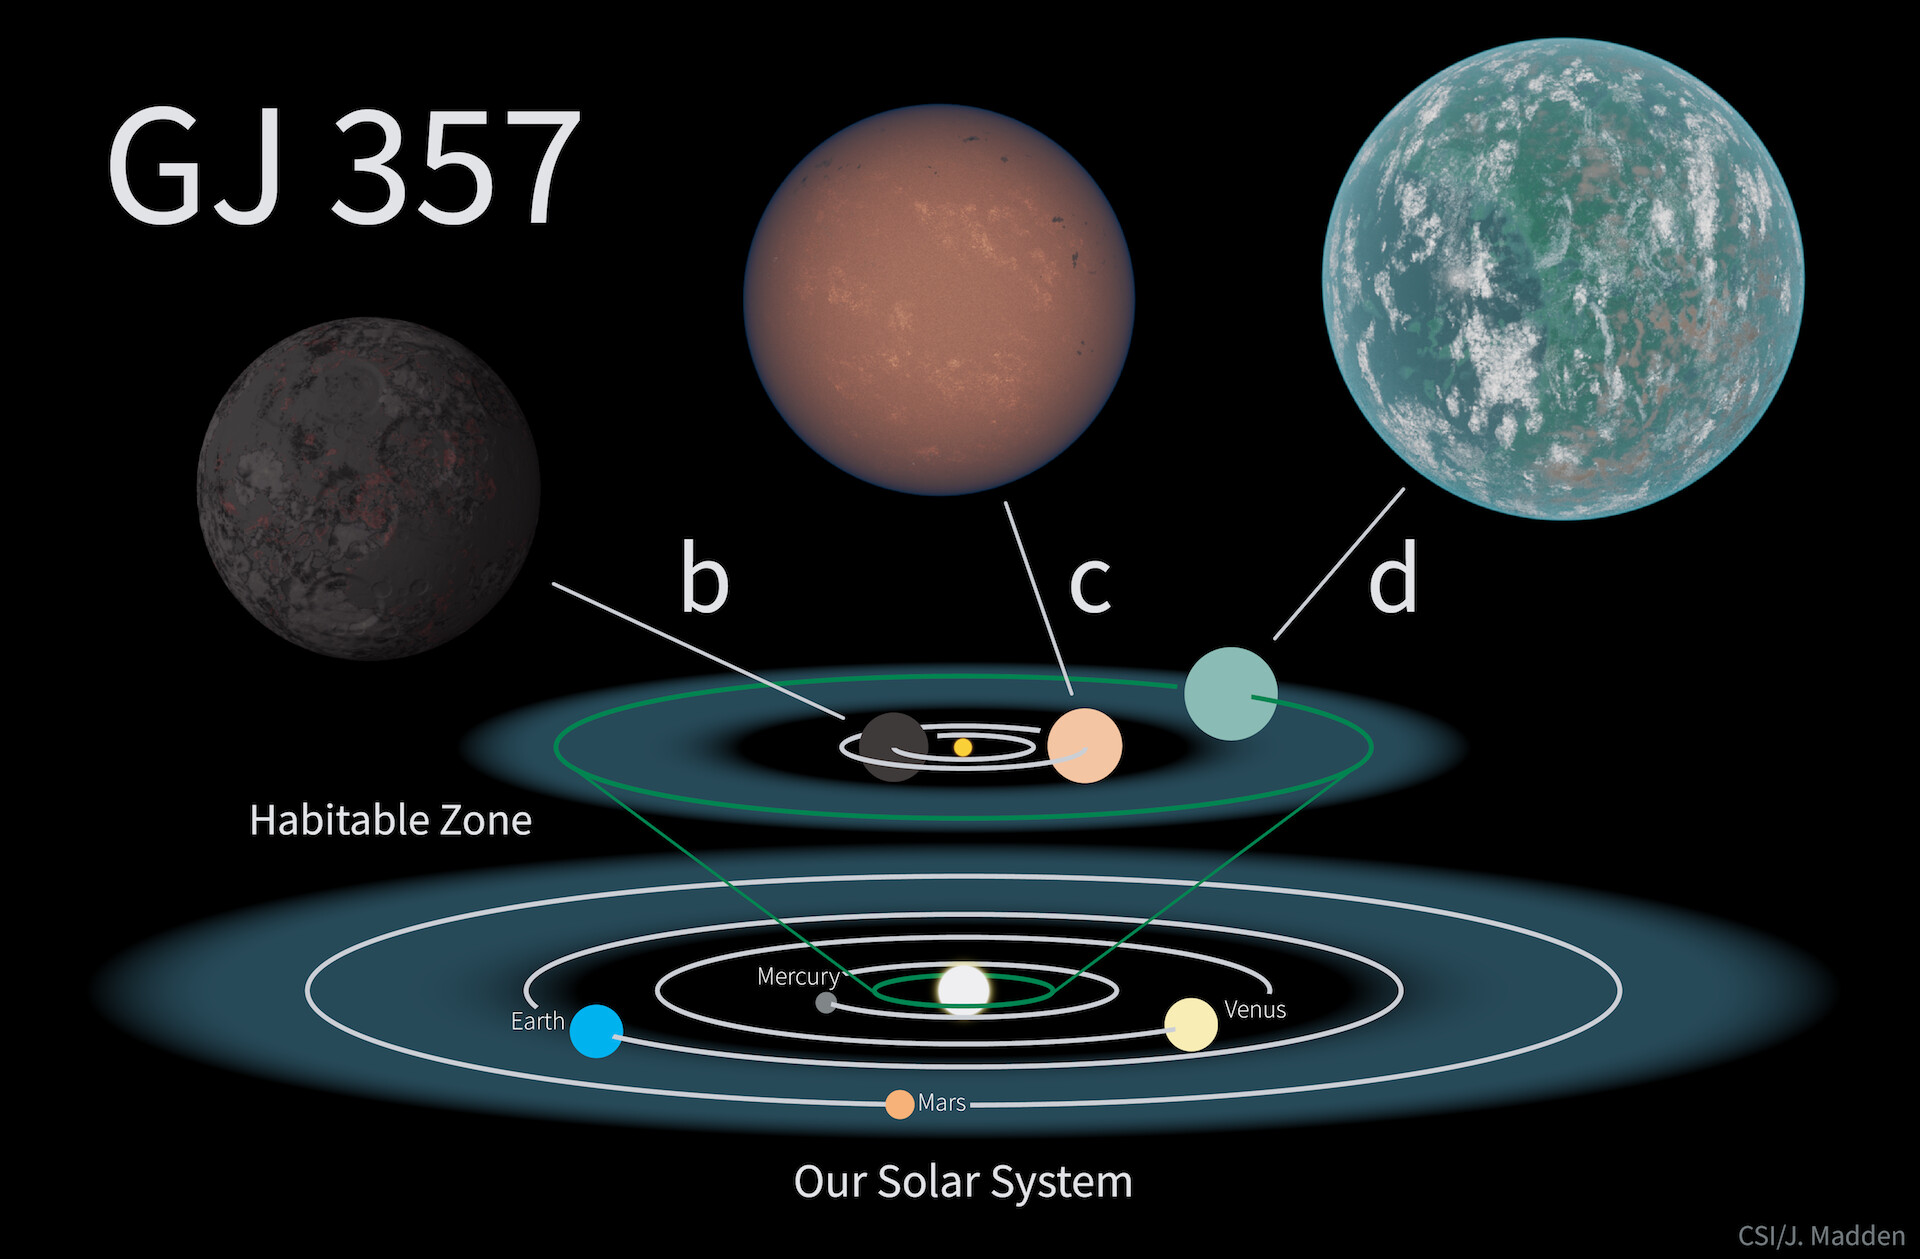 Diagram showing the orbits of the planets compared with our Solar System.